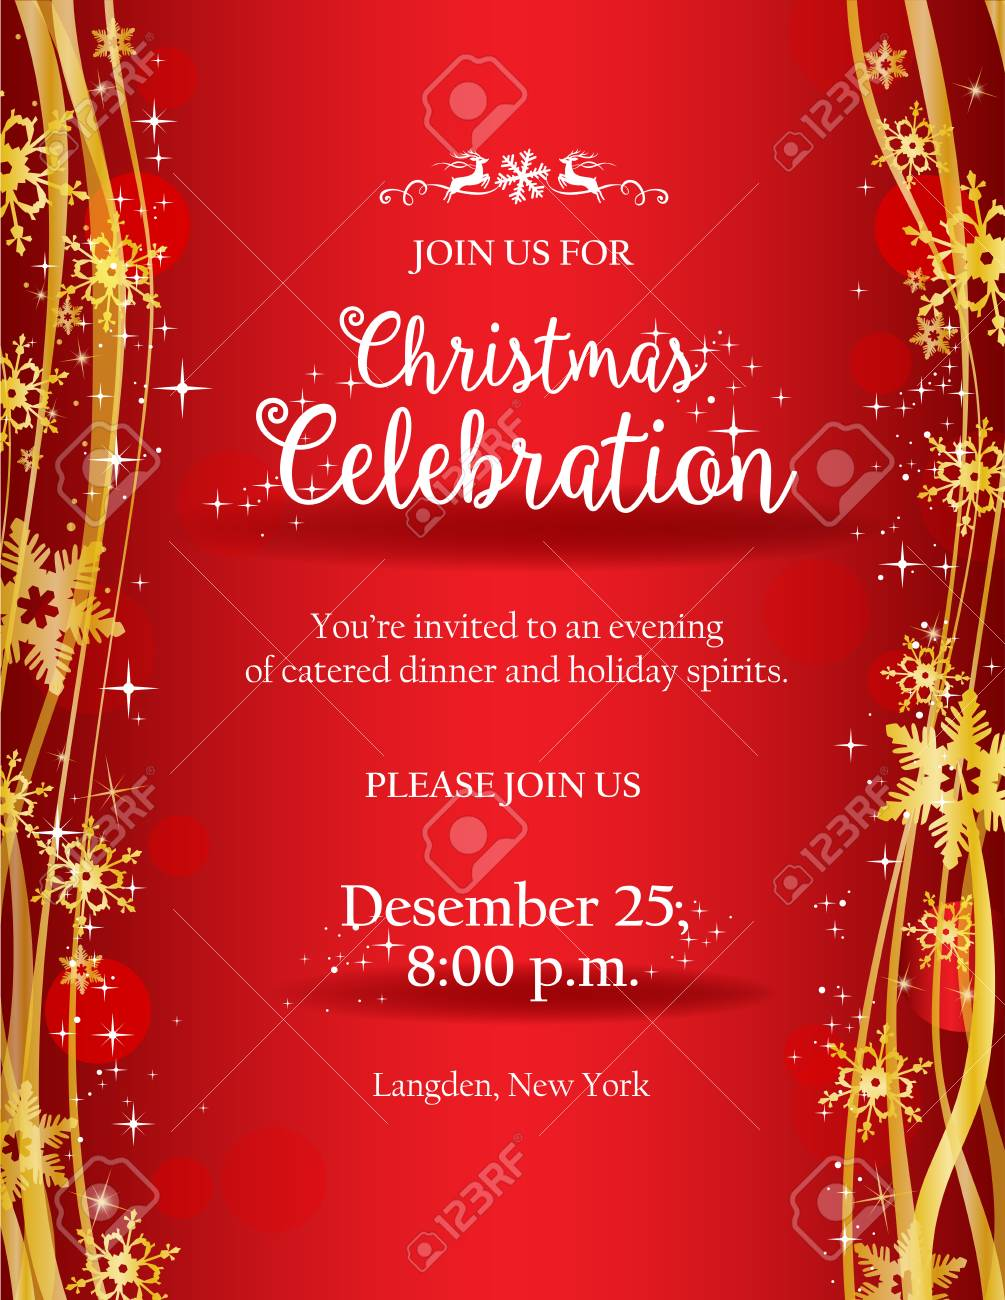 Christmas Party Invitation With Ornate Golden Snowflakes On Red Royalty Free Cliparts Vectors And Stock Illustration Image 88590945